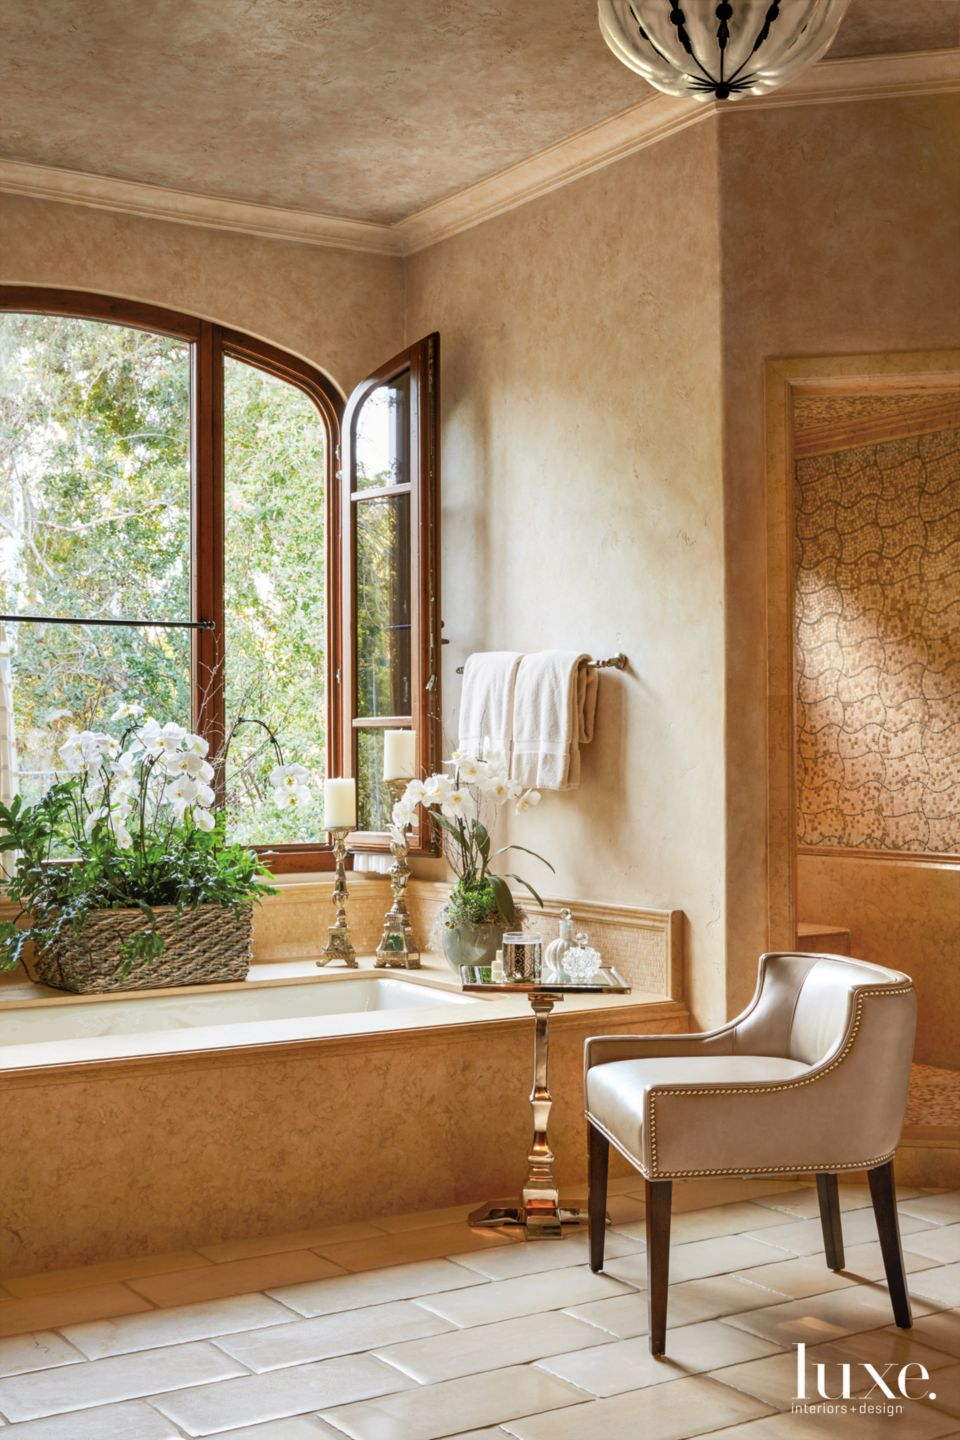 Transitional Neutral Bathroom with Wood-Framed Arched Windowa